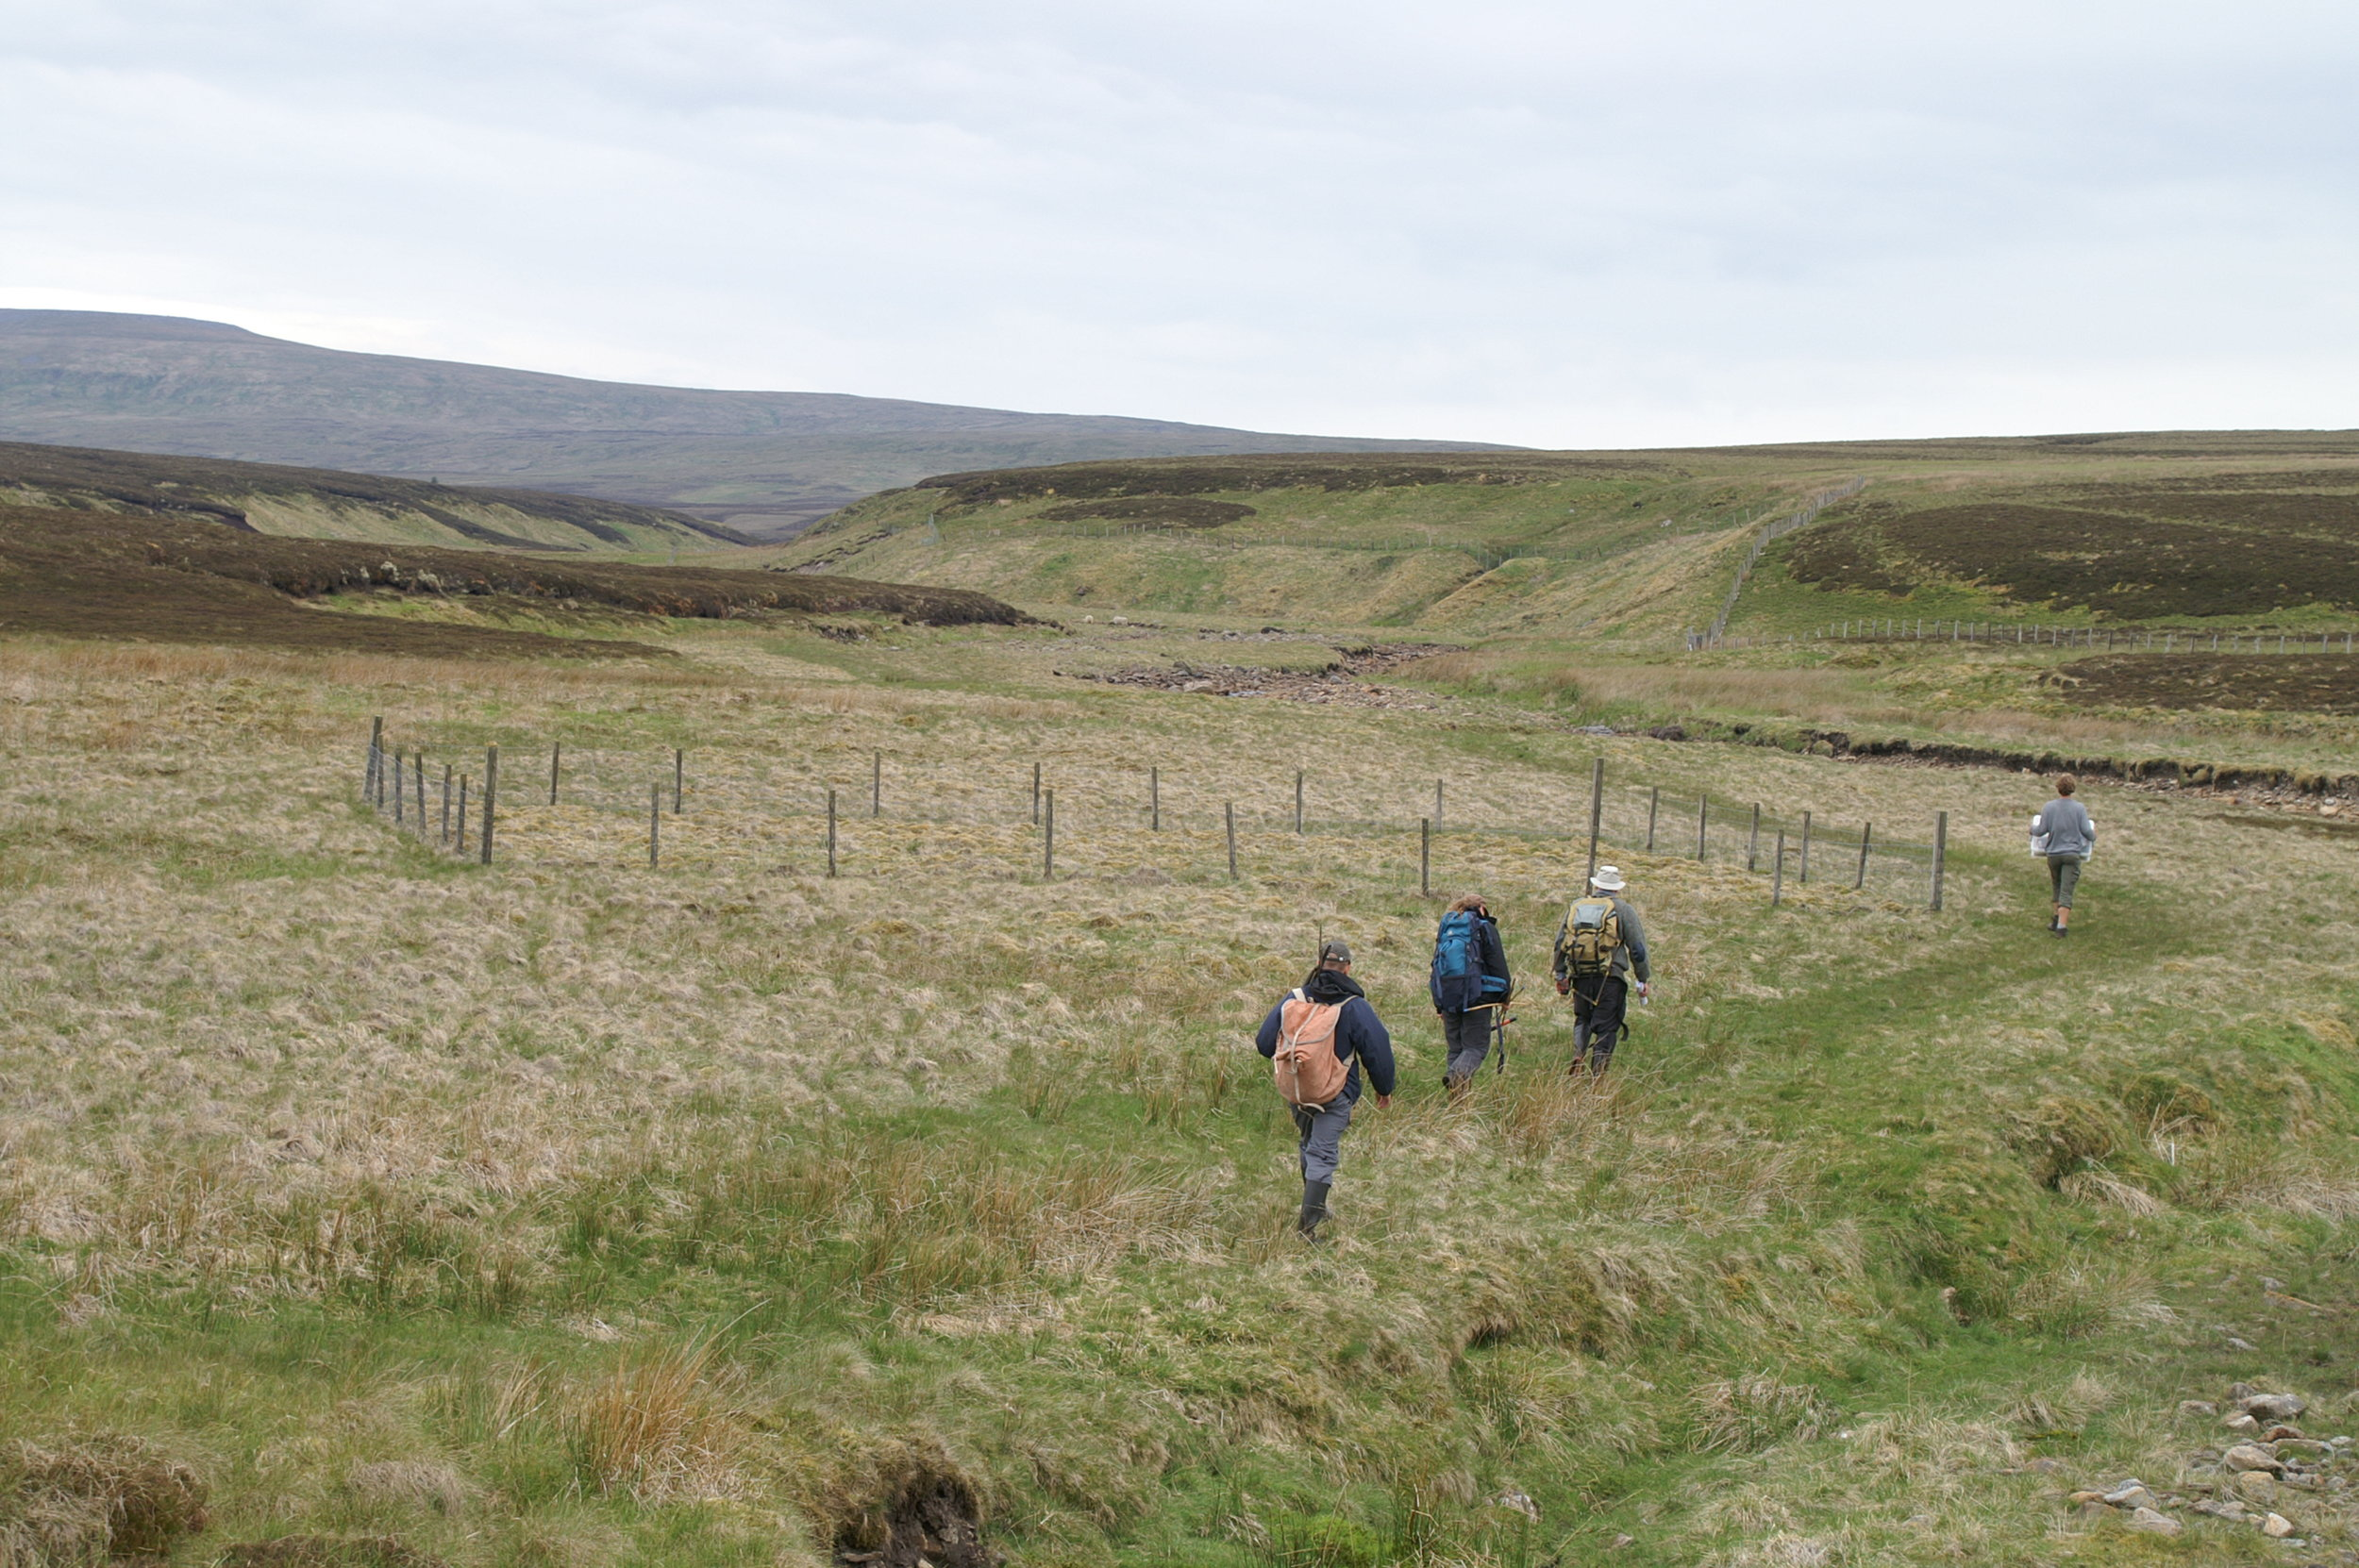 rewilding plot (grazing exclusion) at the moor house lte, northern pennines